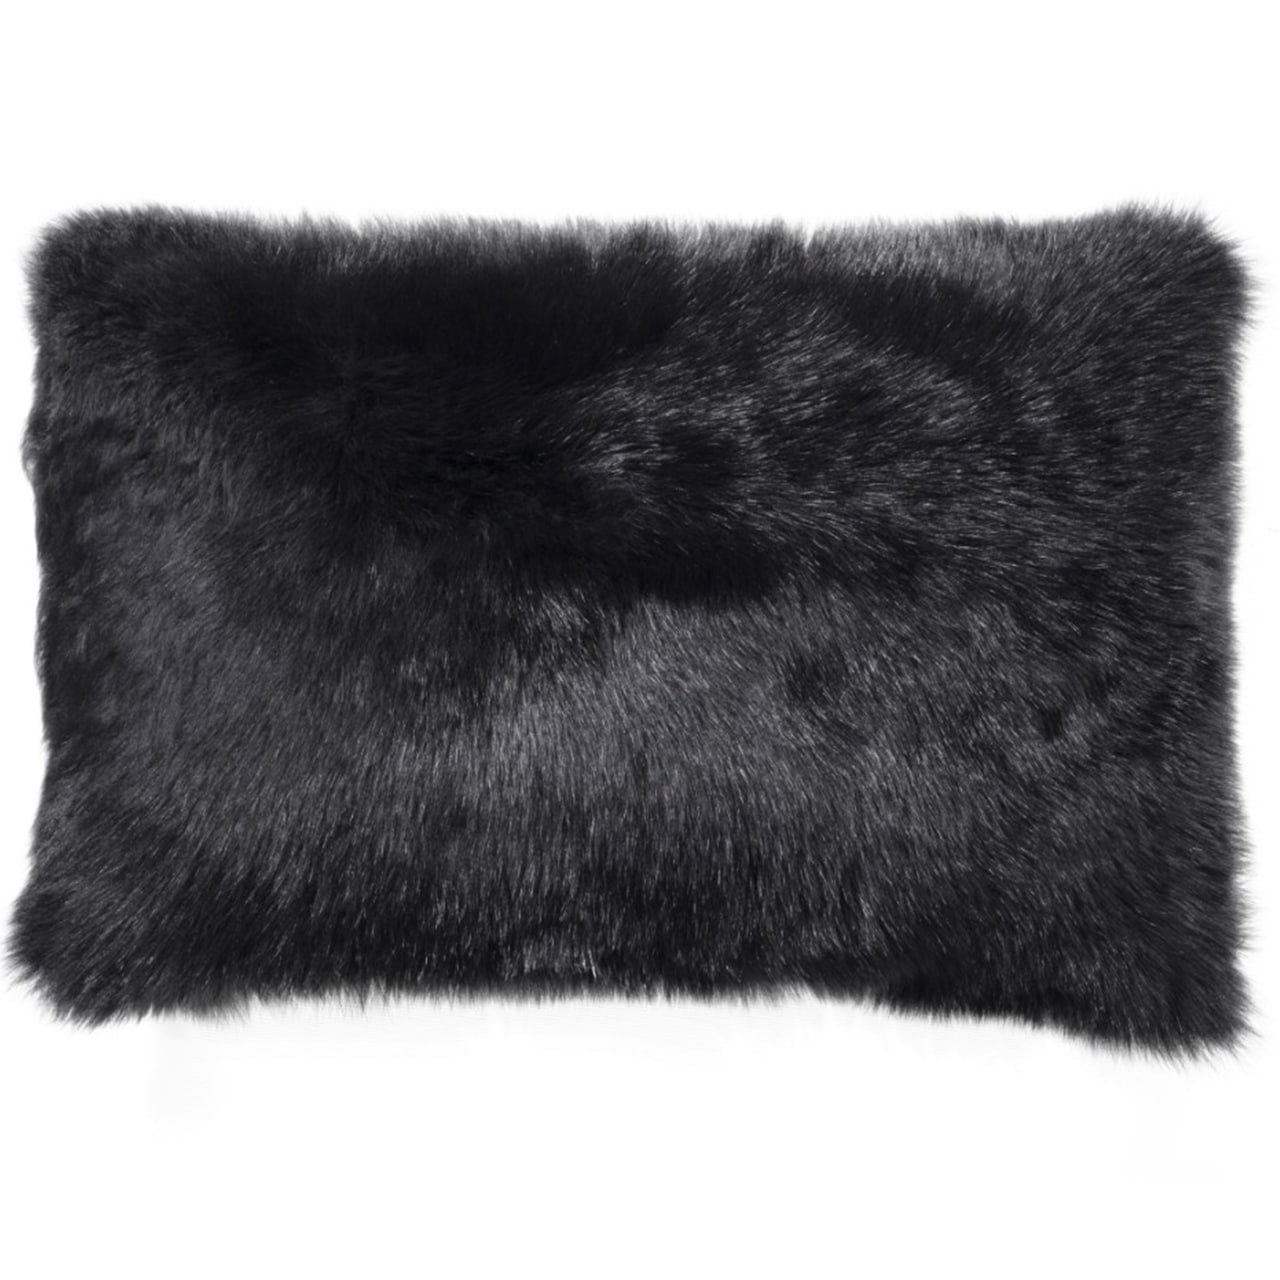 NEW-Shearling Pillow- Black- 35x55cm (SPBLABL3555) - ANVOGG FEEL SHEARLING | ANVOGG